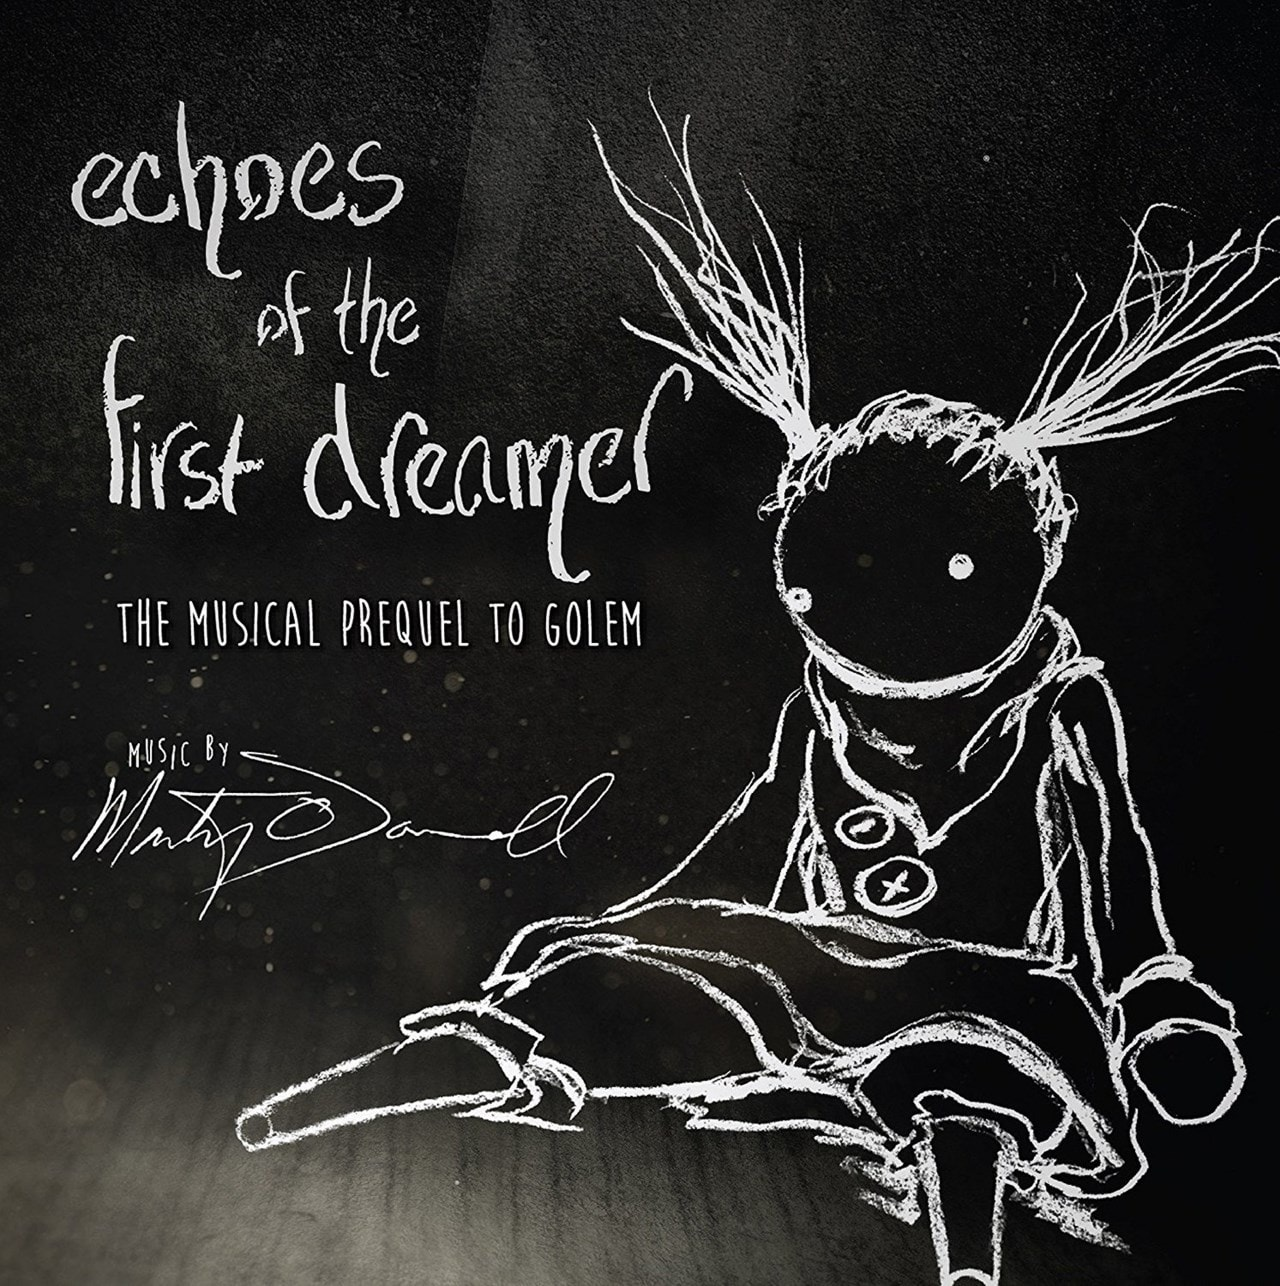 Echoes of the First Dreamer: The Musical Prequel to 'Golem' - 1